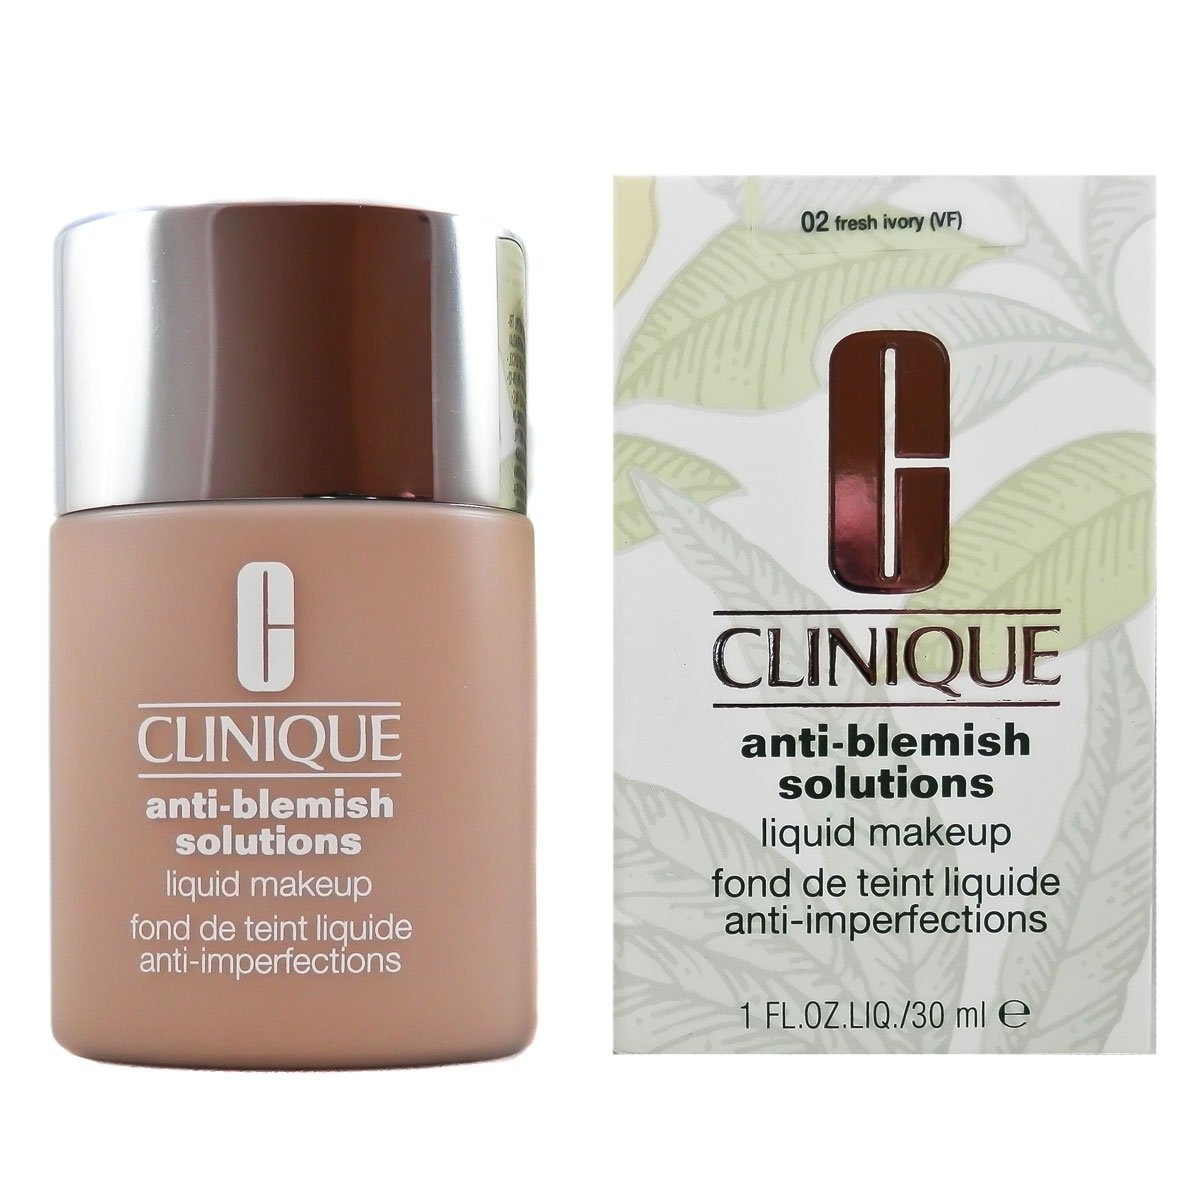 Clinique Anti-Blemish Foundation